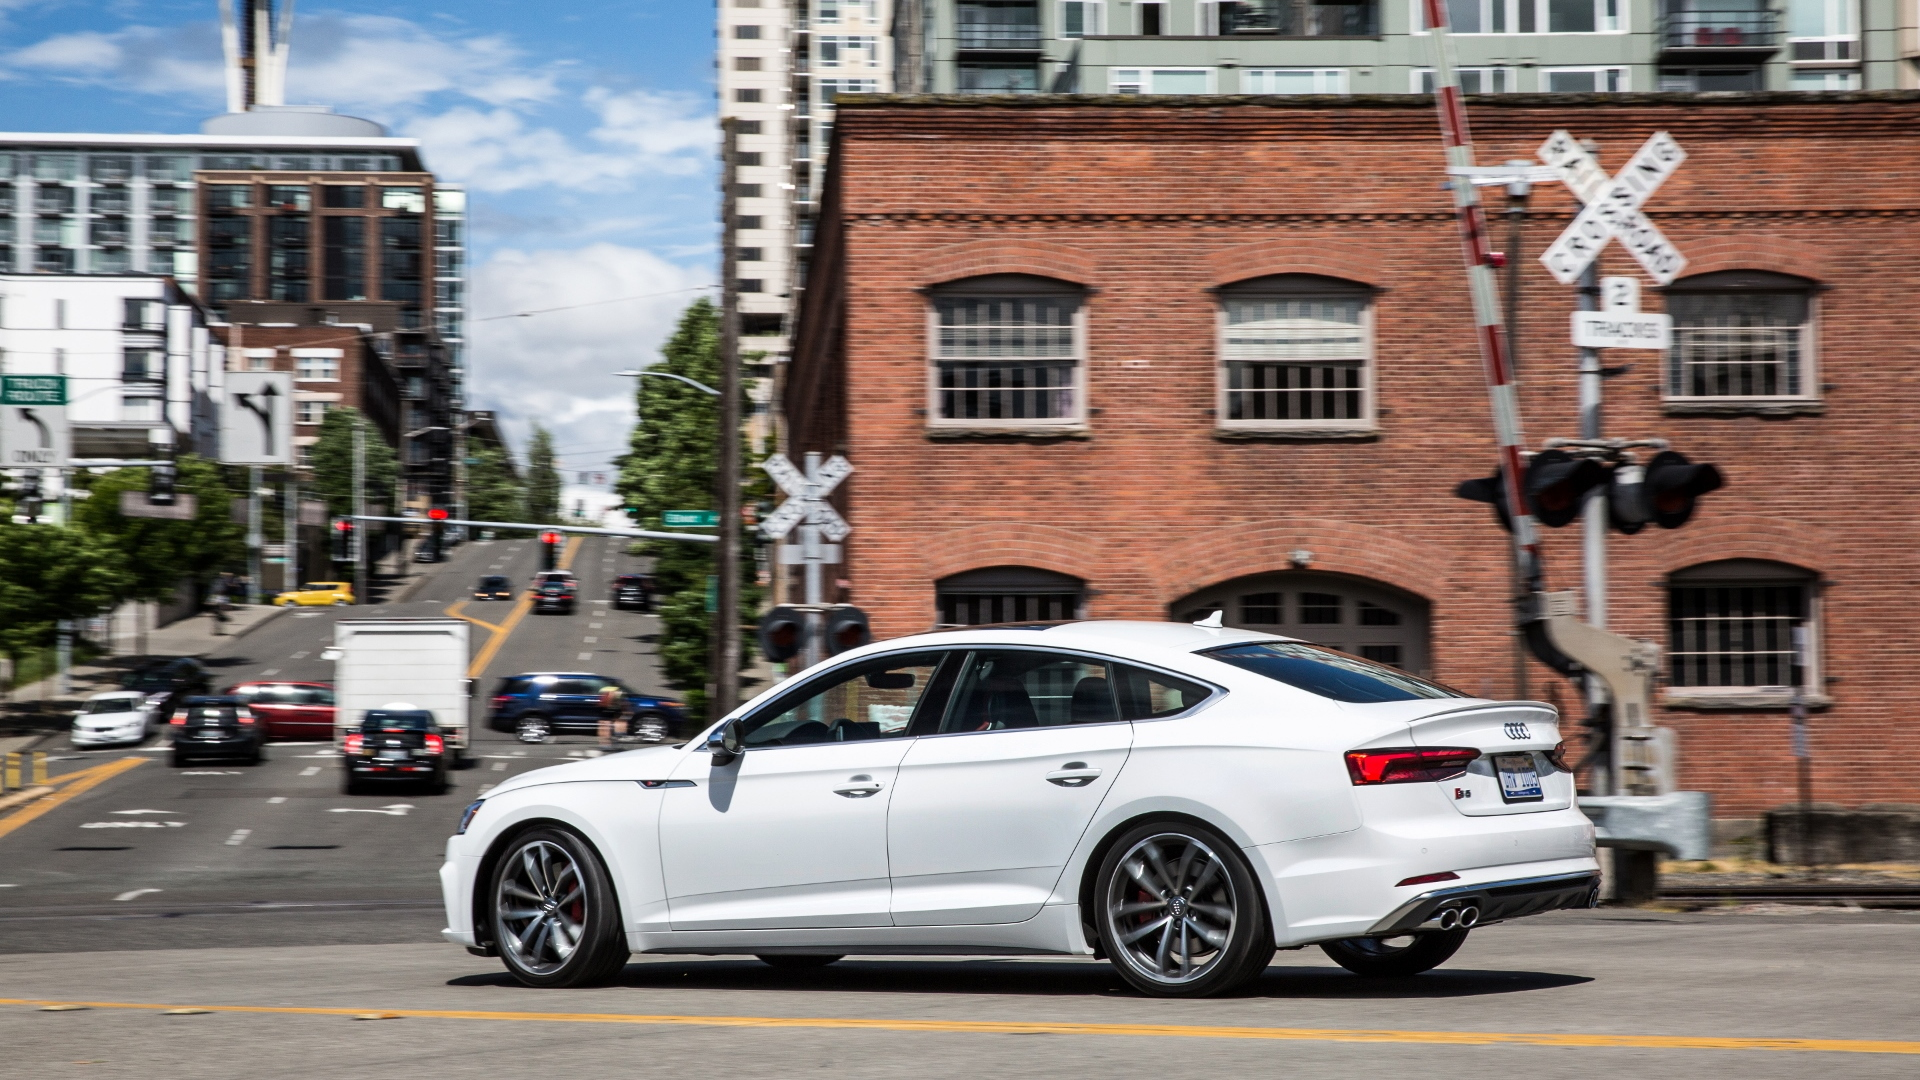 2018 audi a5/s5 sportback first drive review: a niche worth exploring